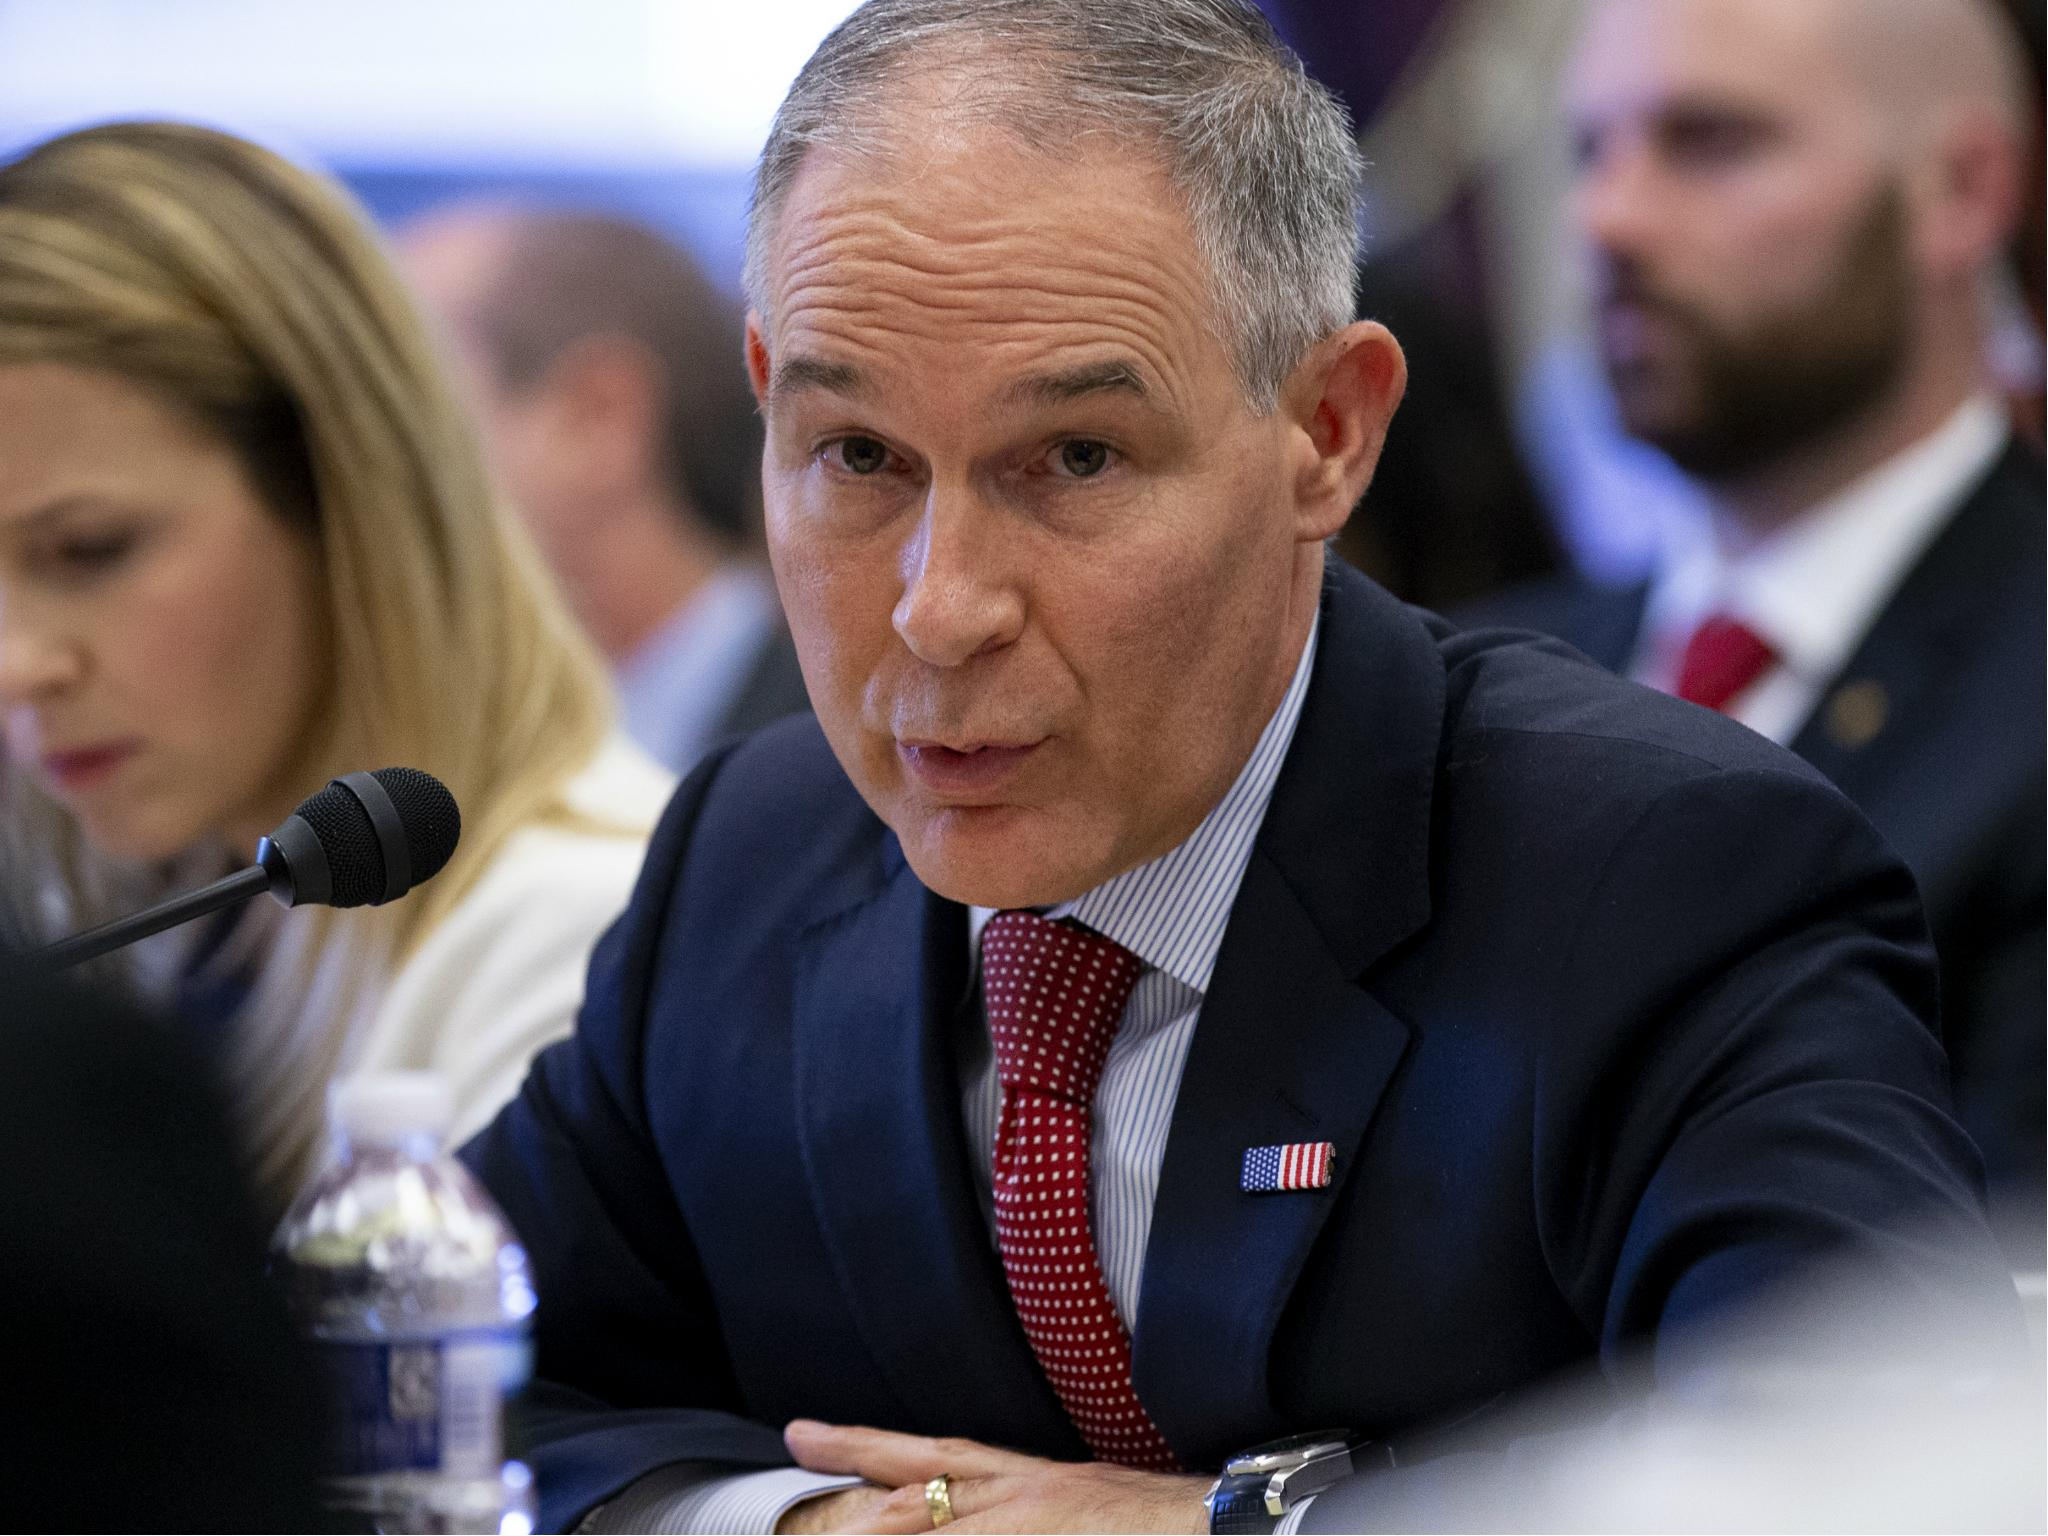 Scott Pruitt: EPA chief had 'round-the-clock' security since first day in office, contrary to his claims